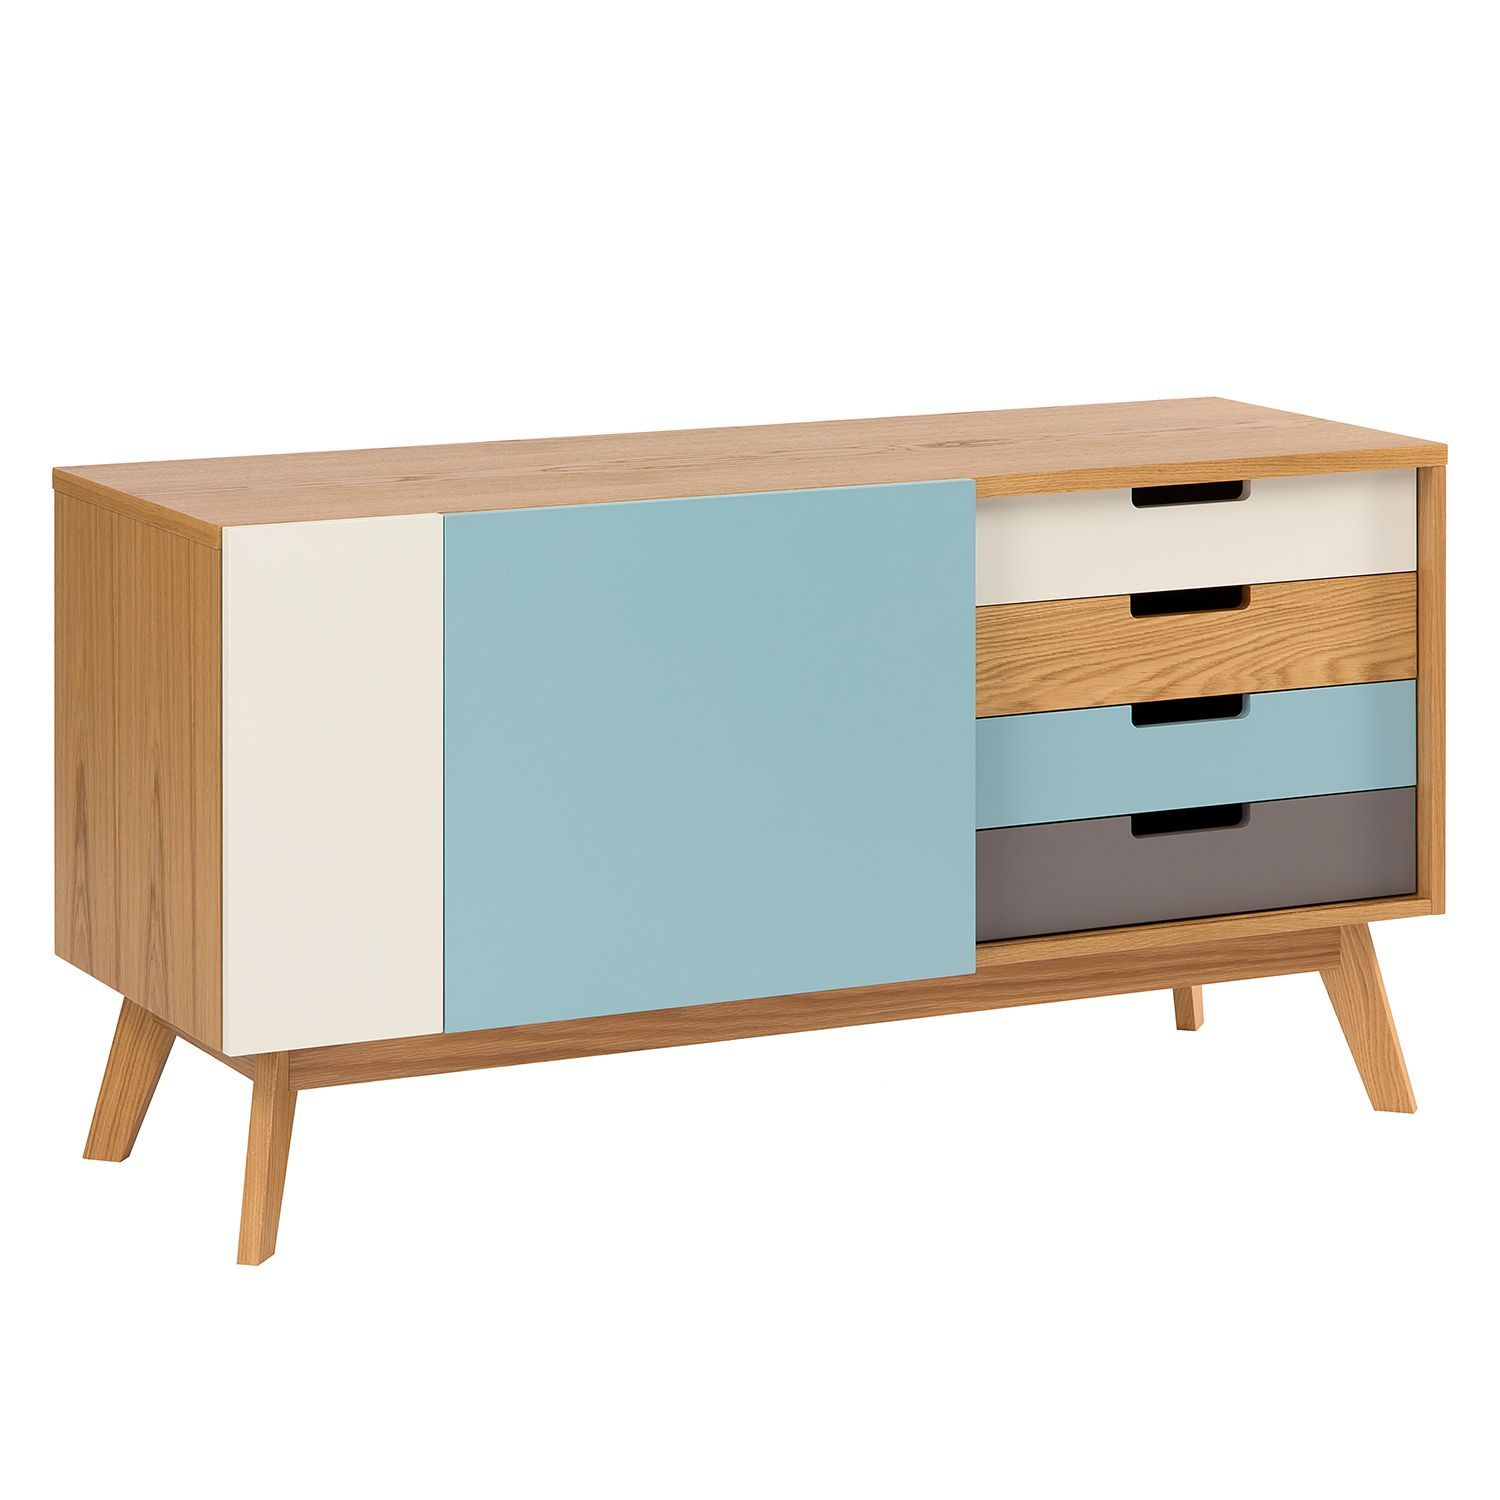 Kommode Vintage Bunt Home24 Sideboard Chaser I In 2019 Kommoden Und Sideboards